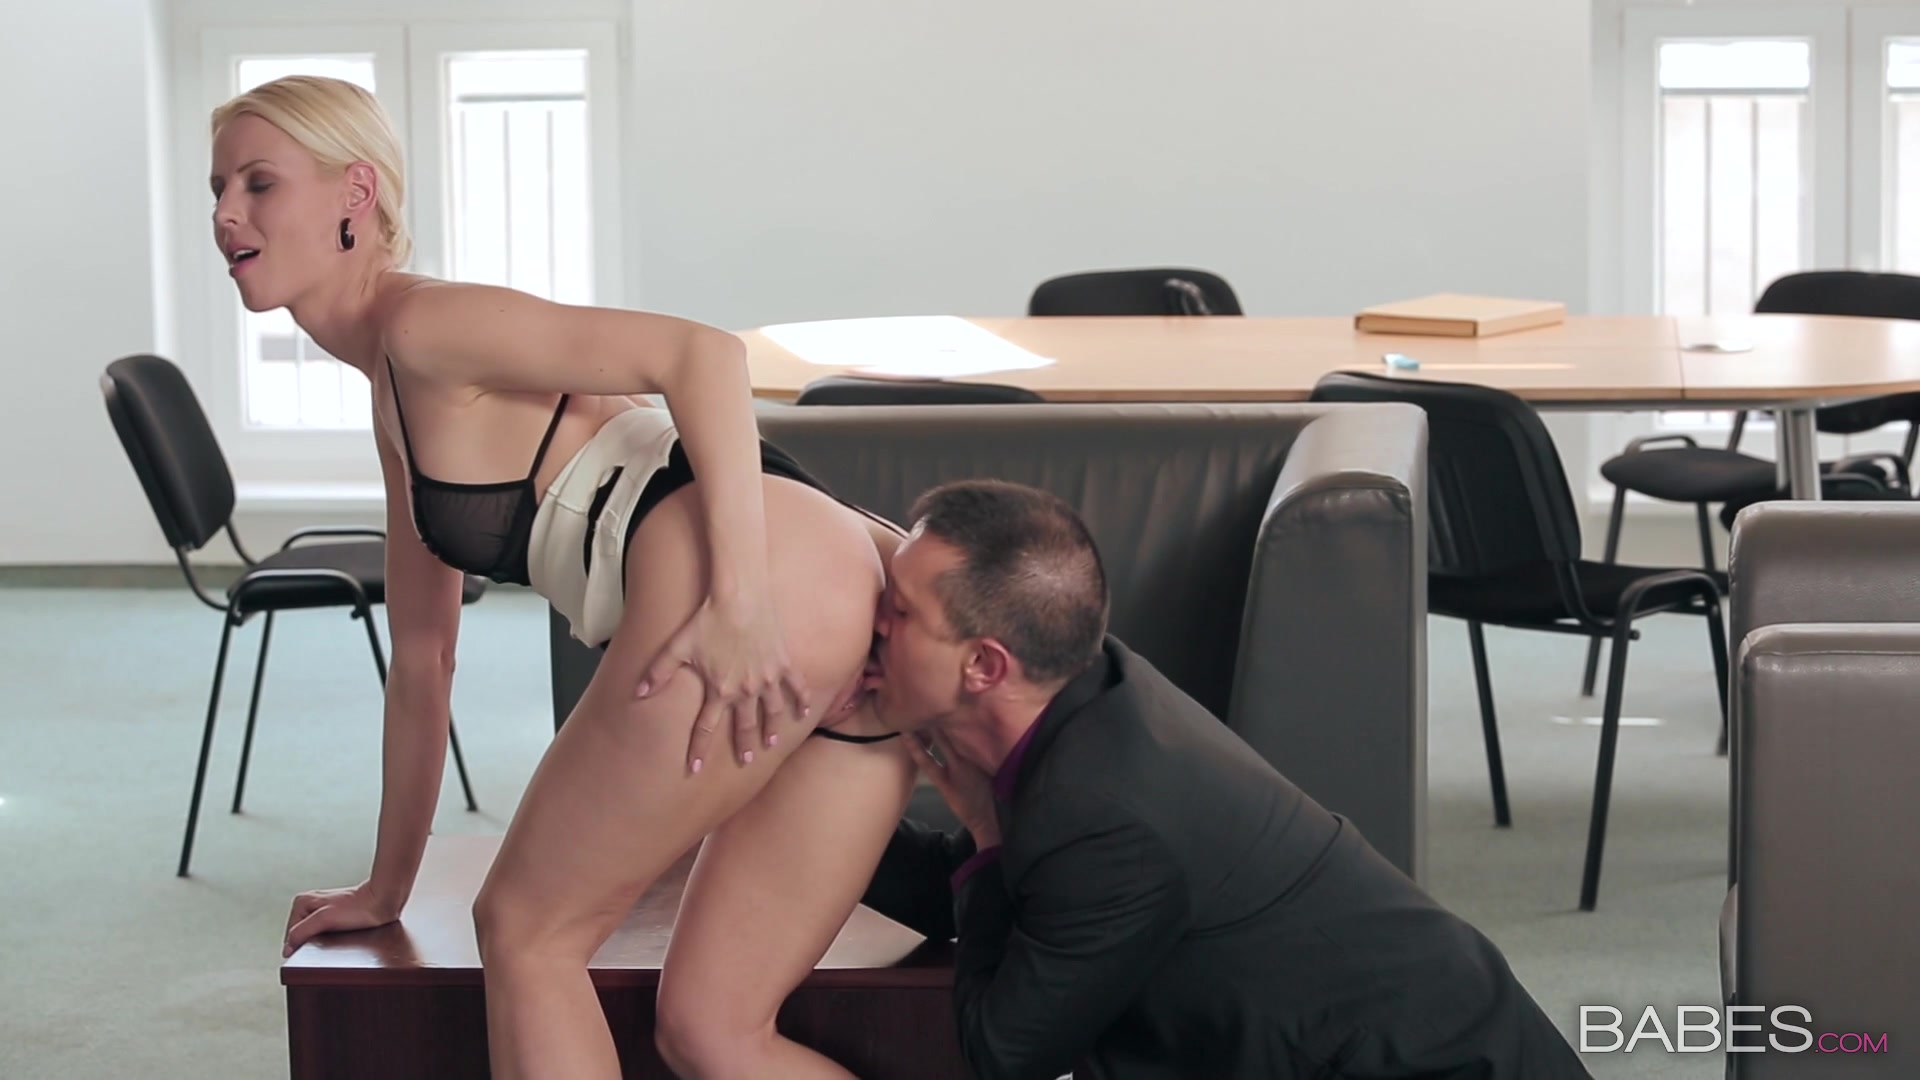 Business babe porn